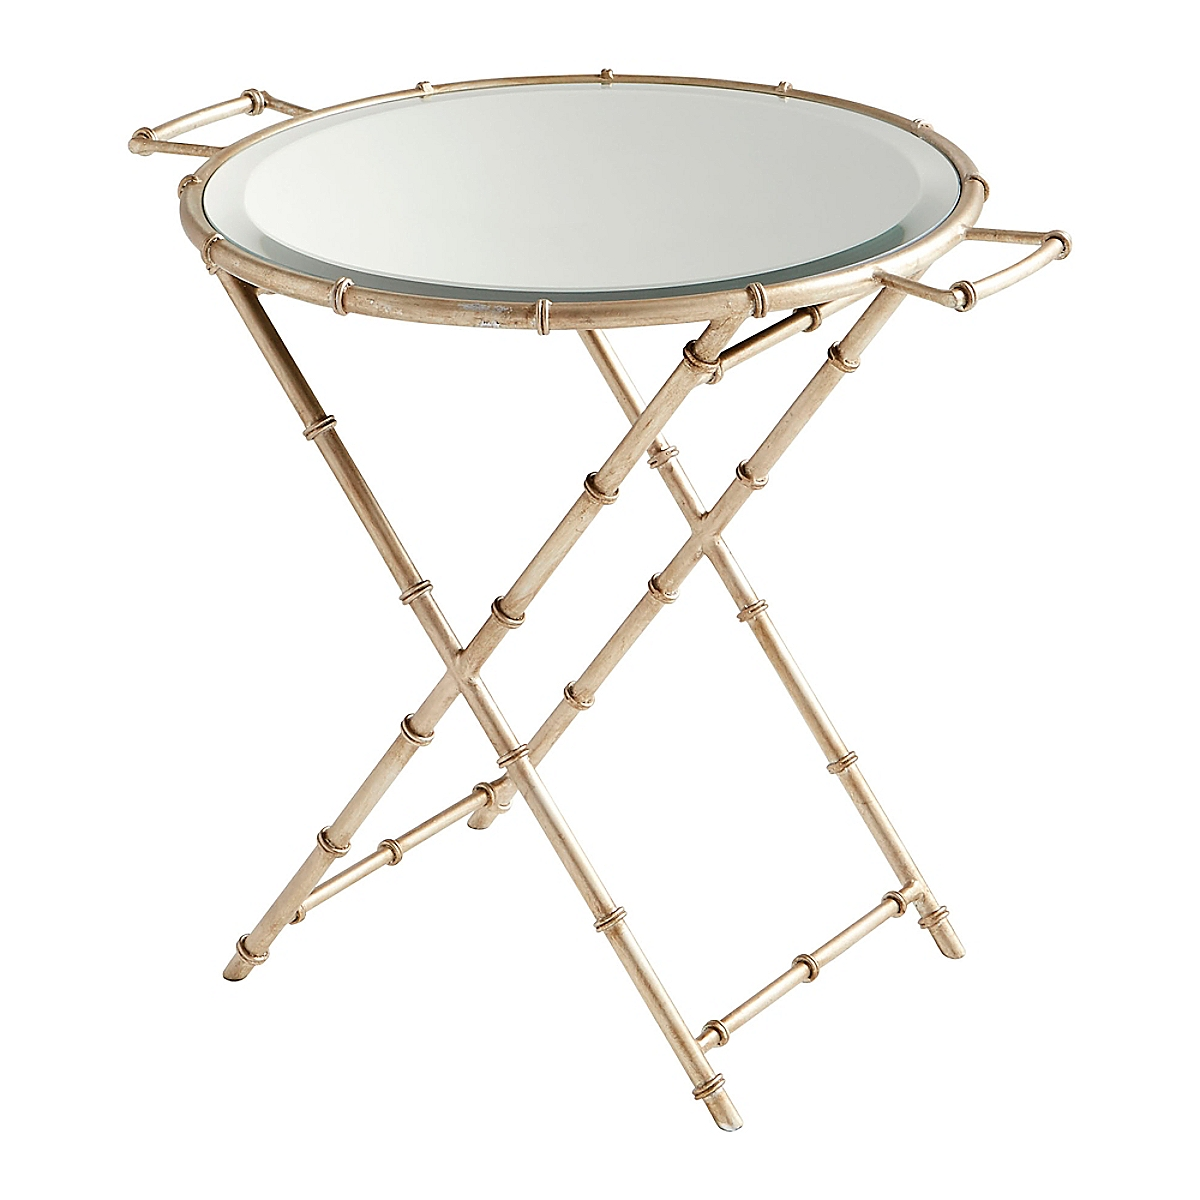 Mirrored Glass Tray Table